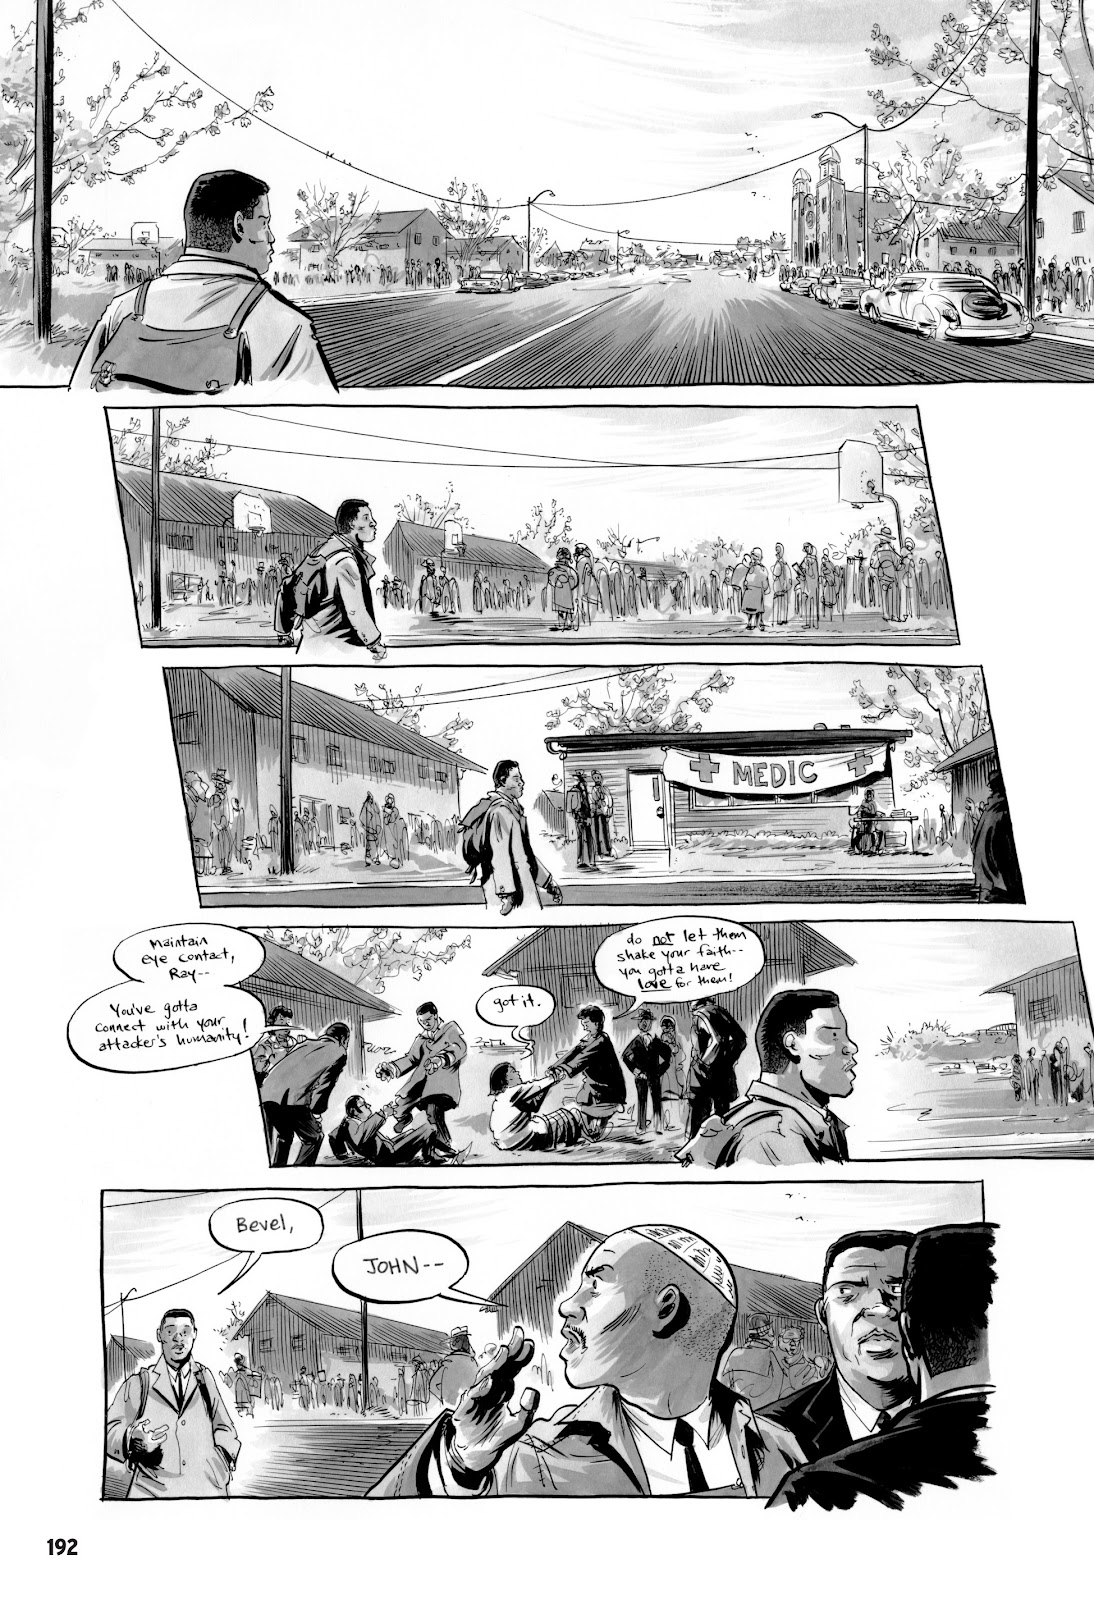 March 3 Page 186